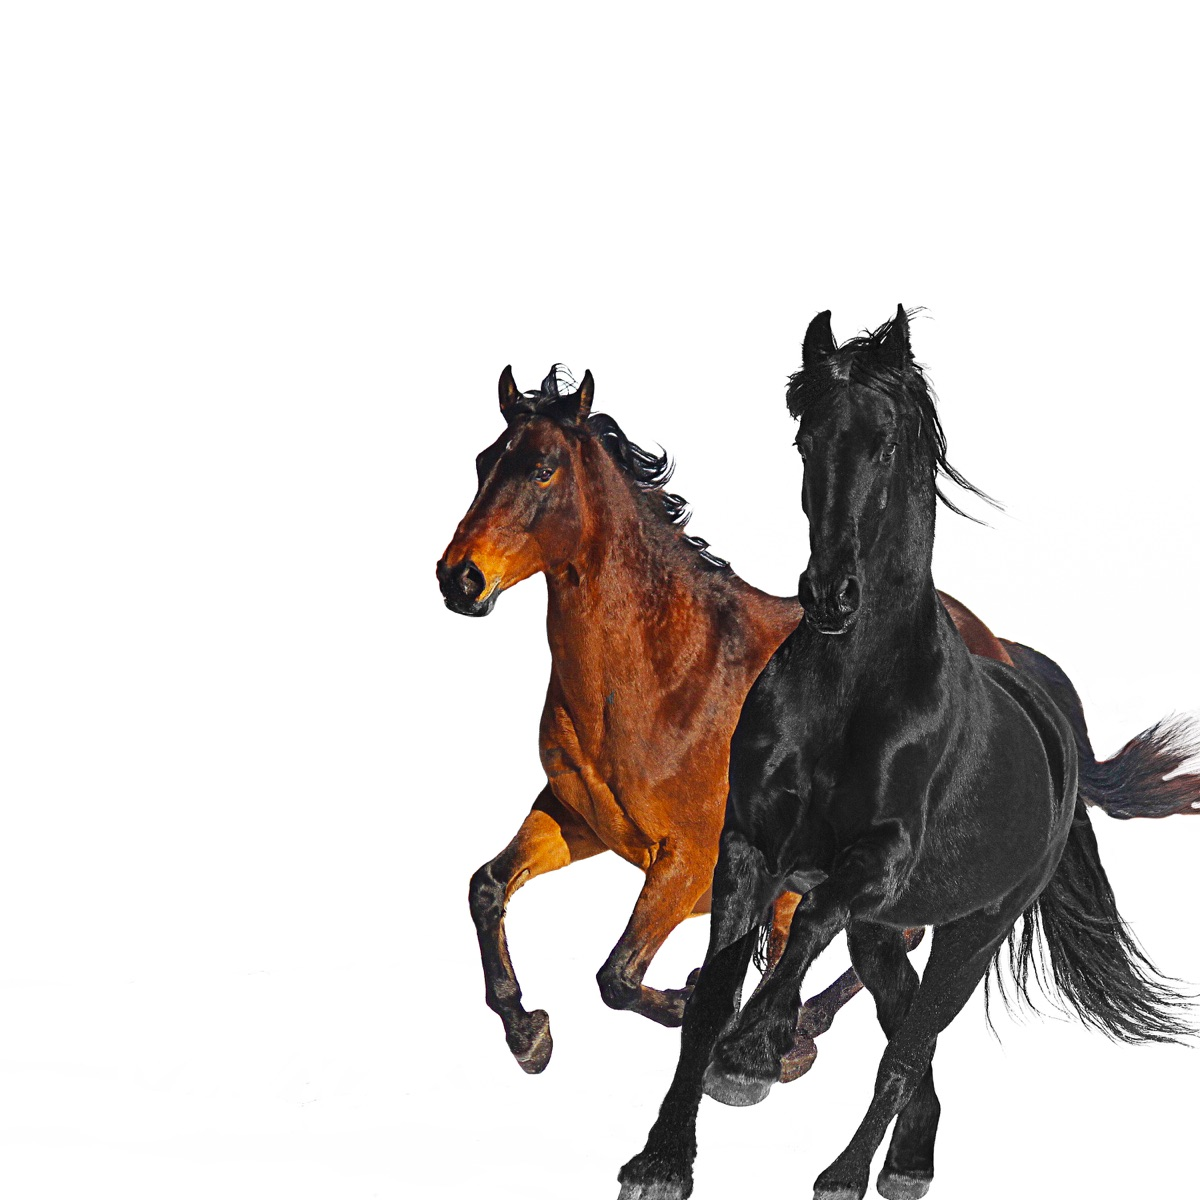 Old Town Road feat Billy Ray Cyrus Remix - Single Lil Nas X CD cover